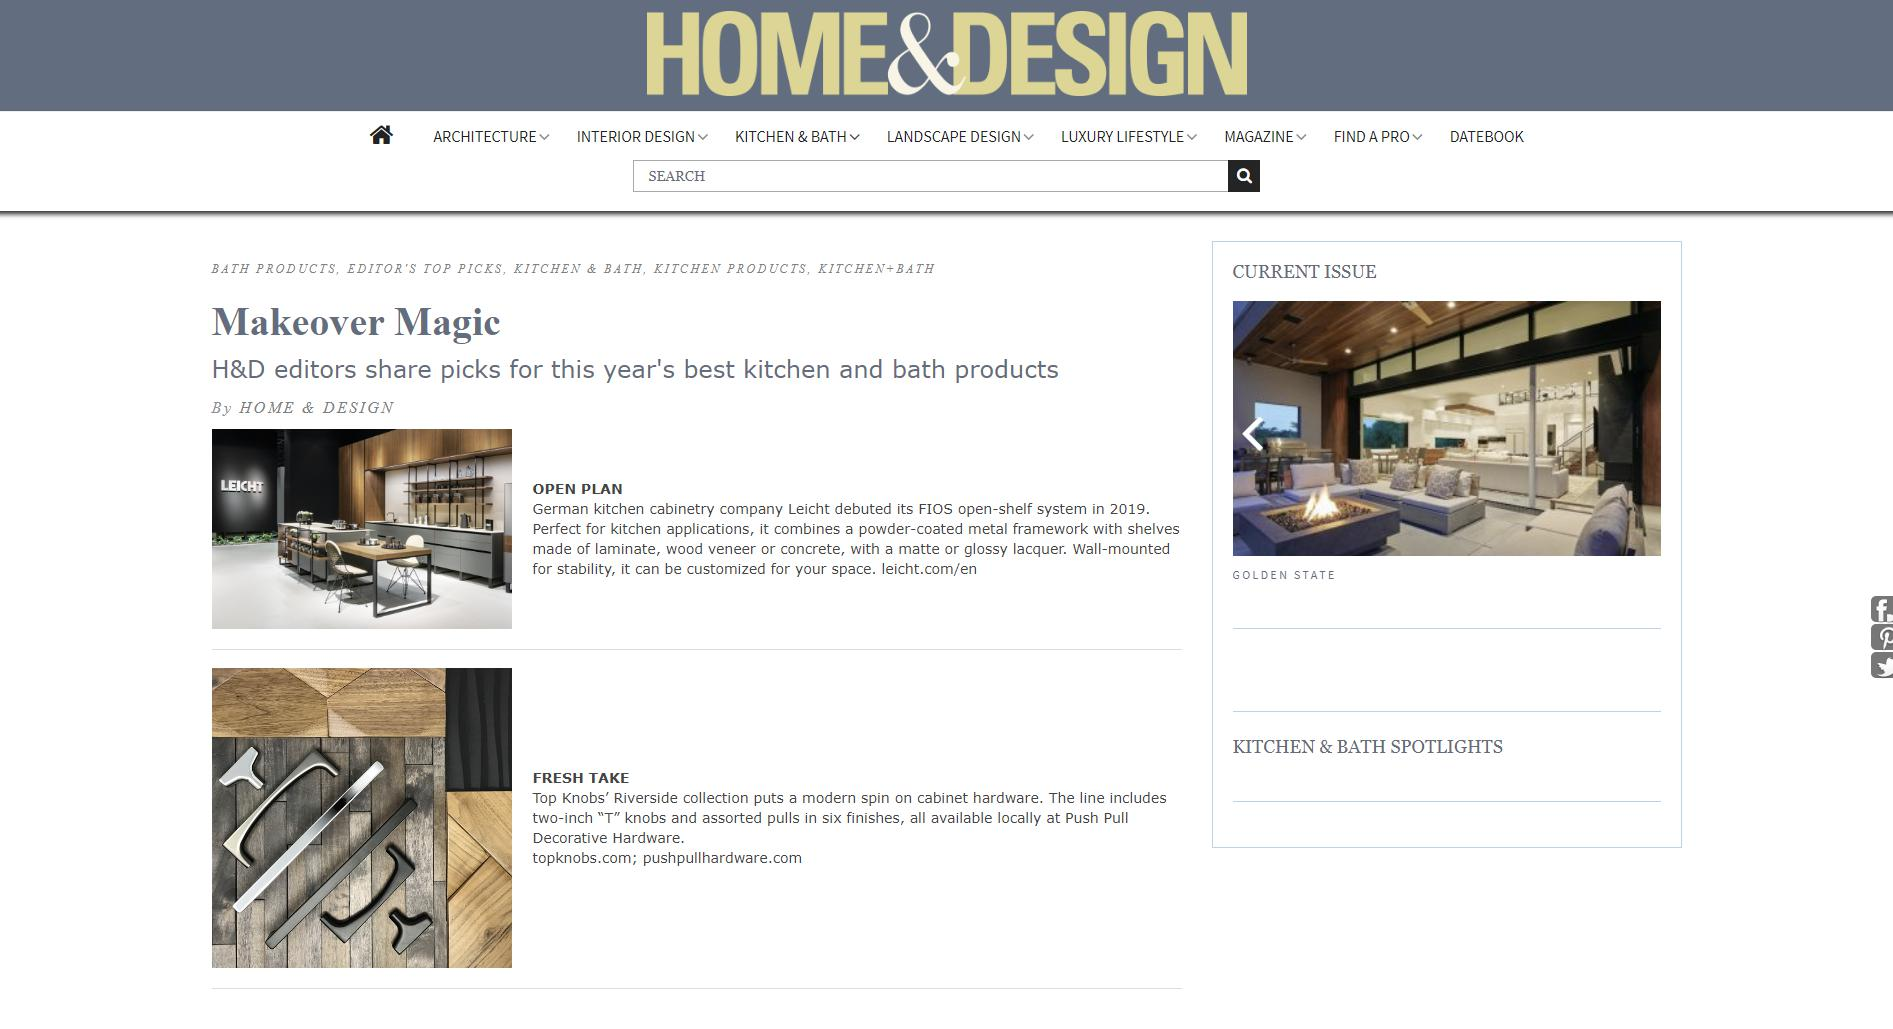 Home & Design Online – October 1st, 2019